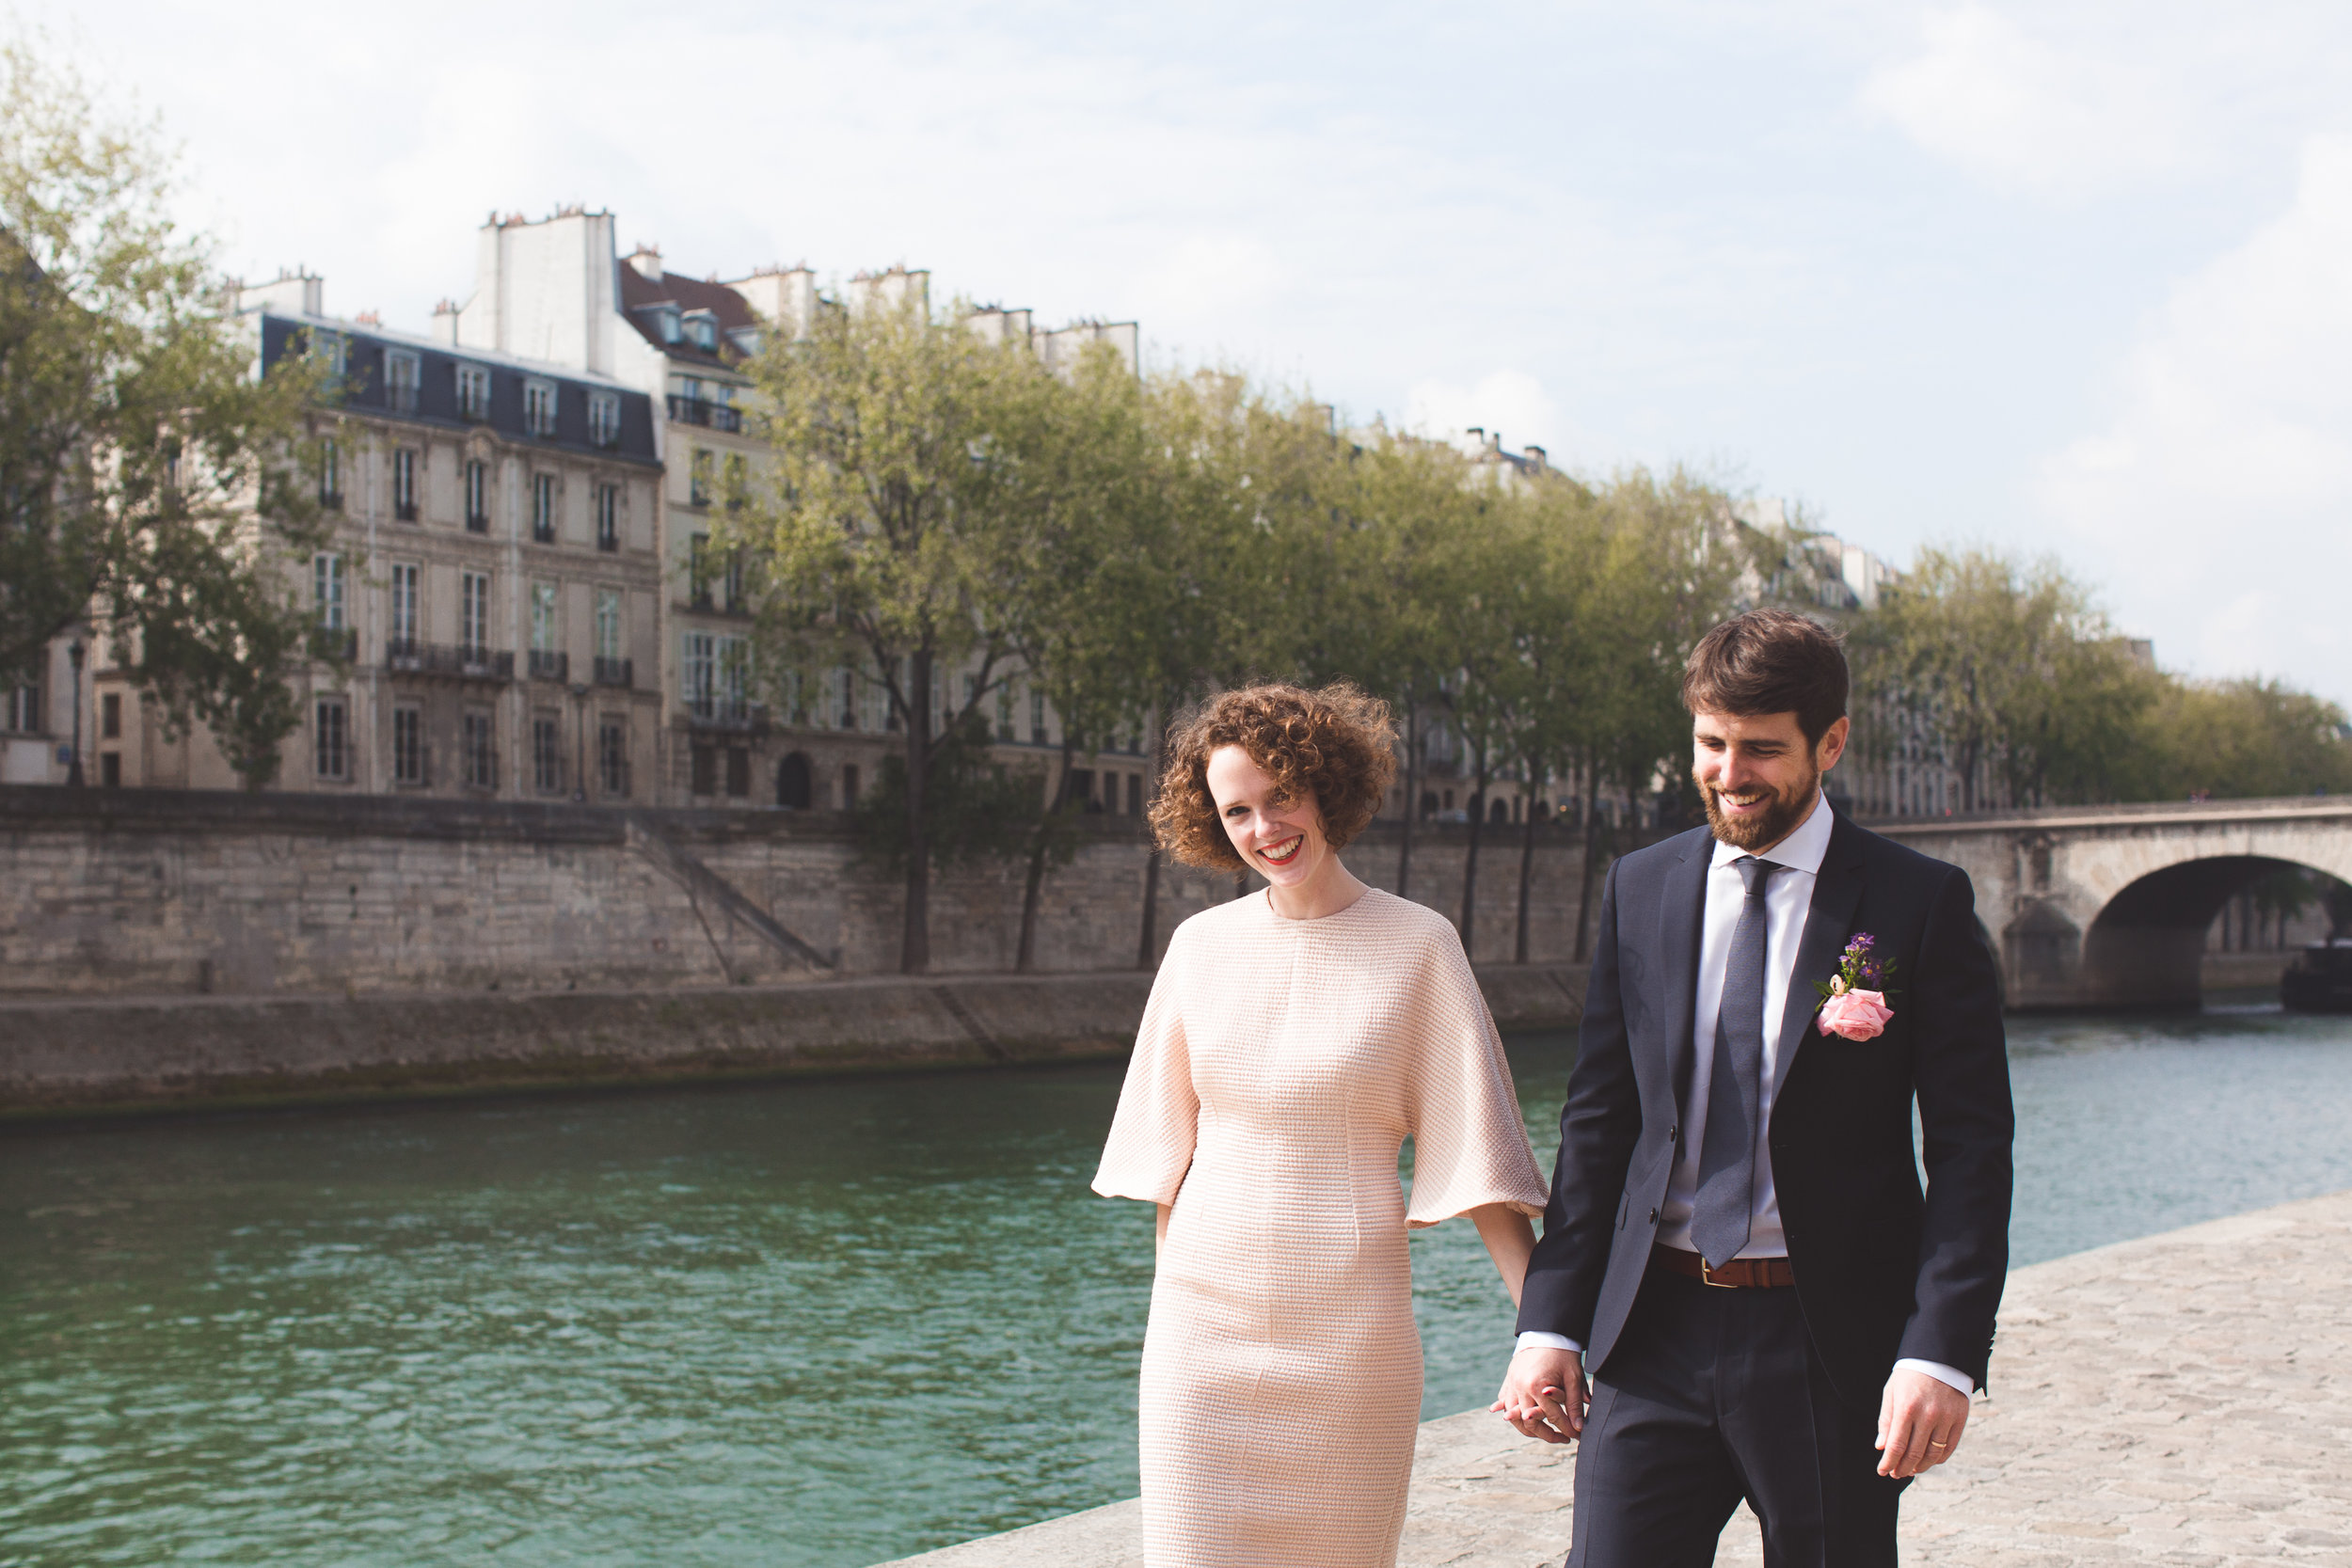 Emma&Nico_WeddingParis_by_UlaBlocksage-200.jpg